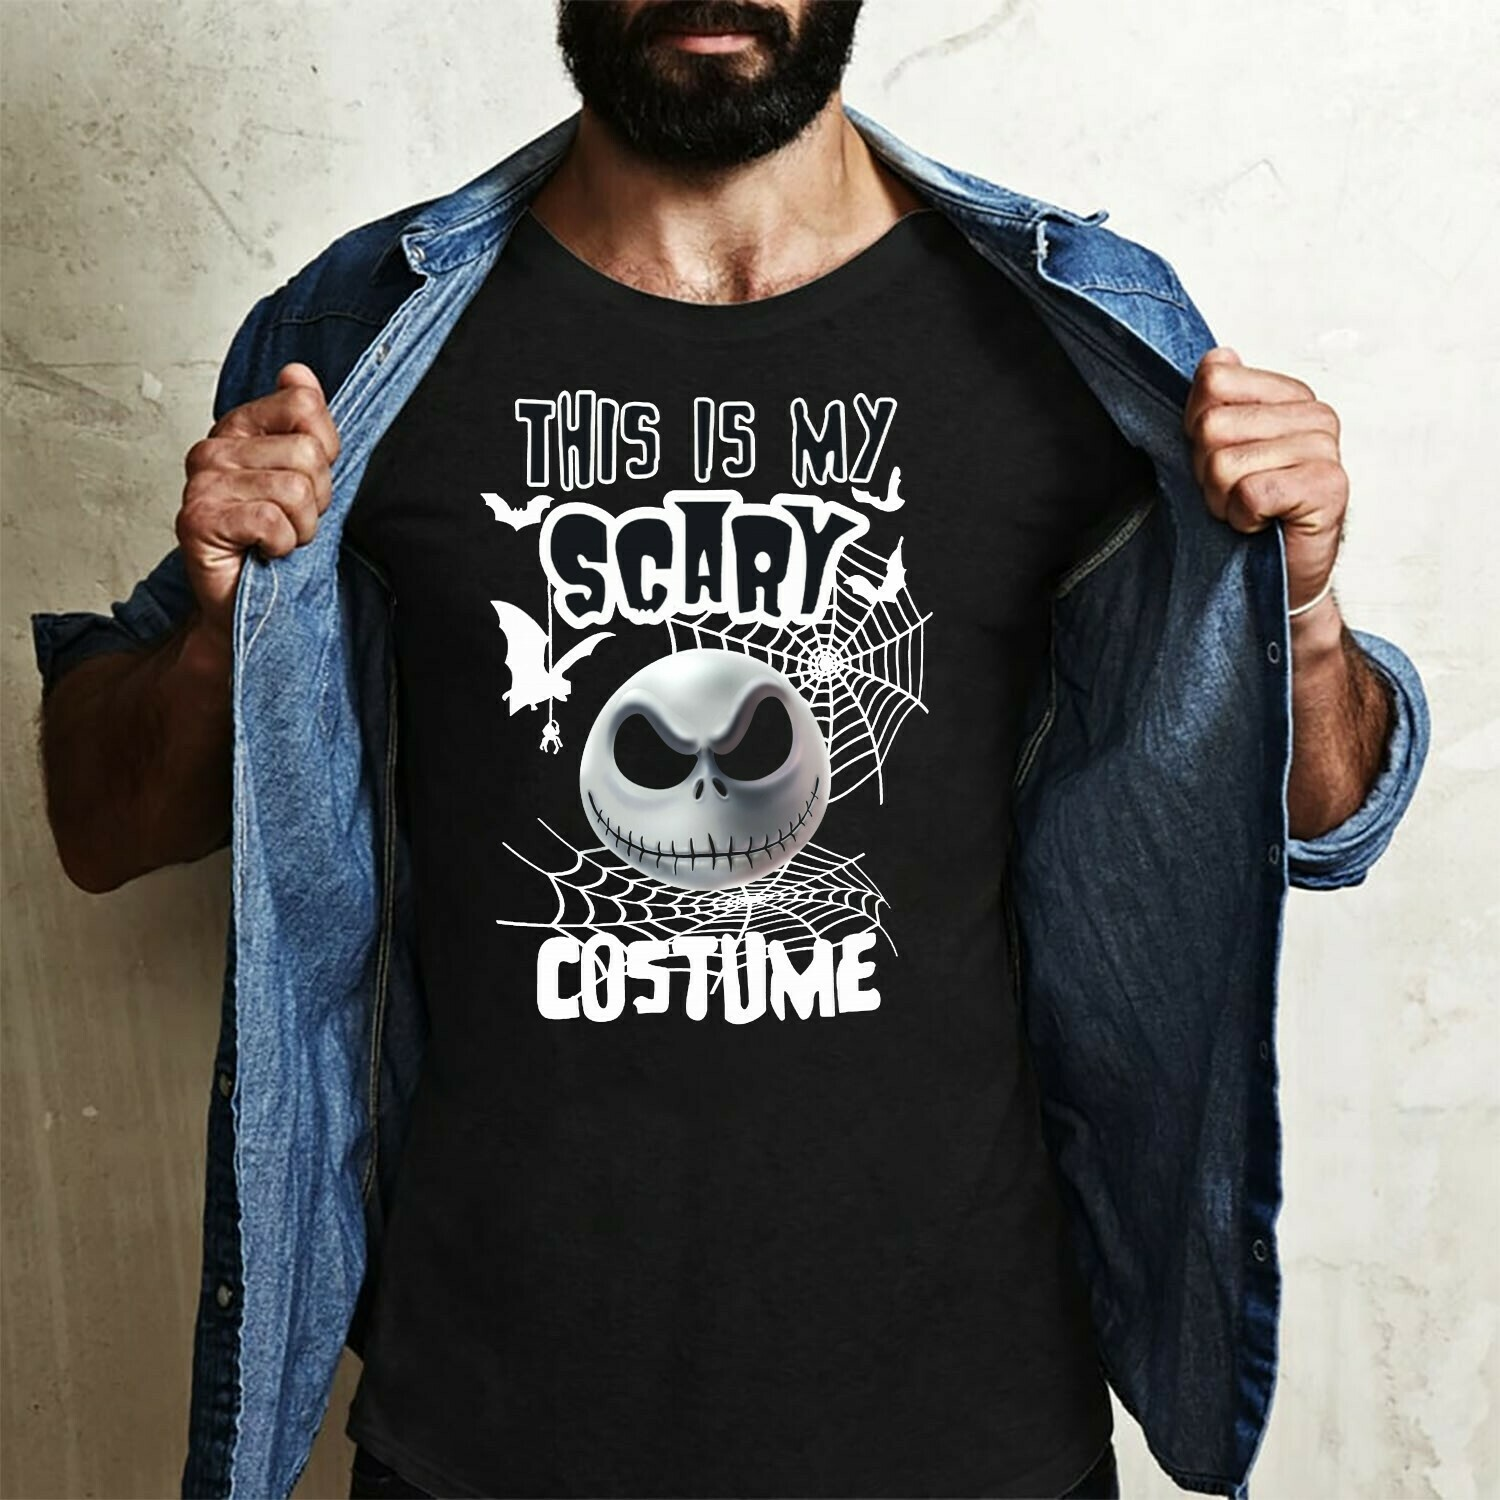 Jack Skellington This Is My Scary Costume The Nightmare Before Christmas Halloween Disney Villains Halloween Mickey Not So Scary T-Shirt Long Sleeve Sweatshirt Hoodie Jolly Family Gifts